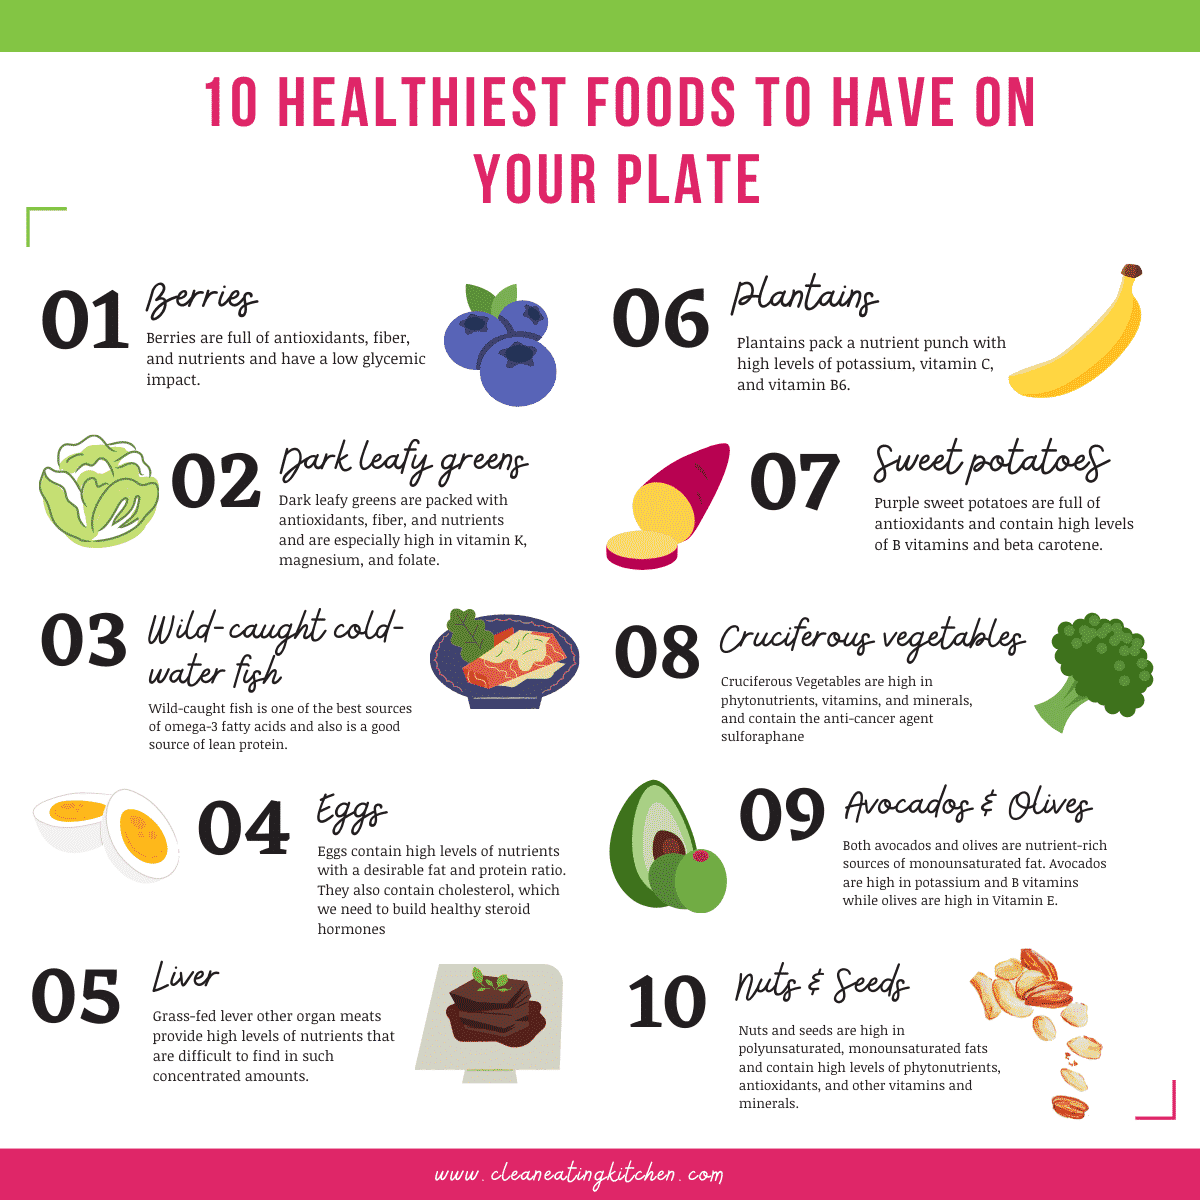 infographic detailing the 10 healthiest foods to have on your plate